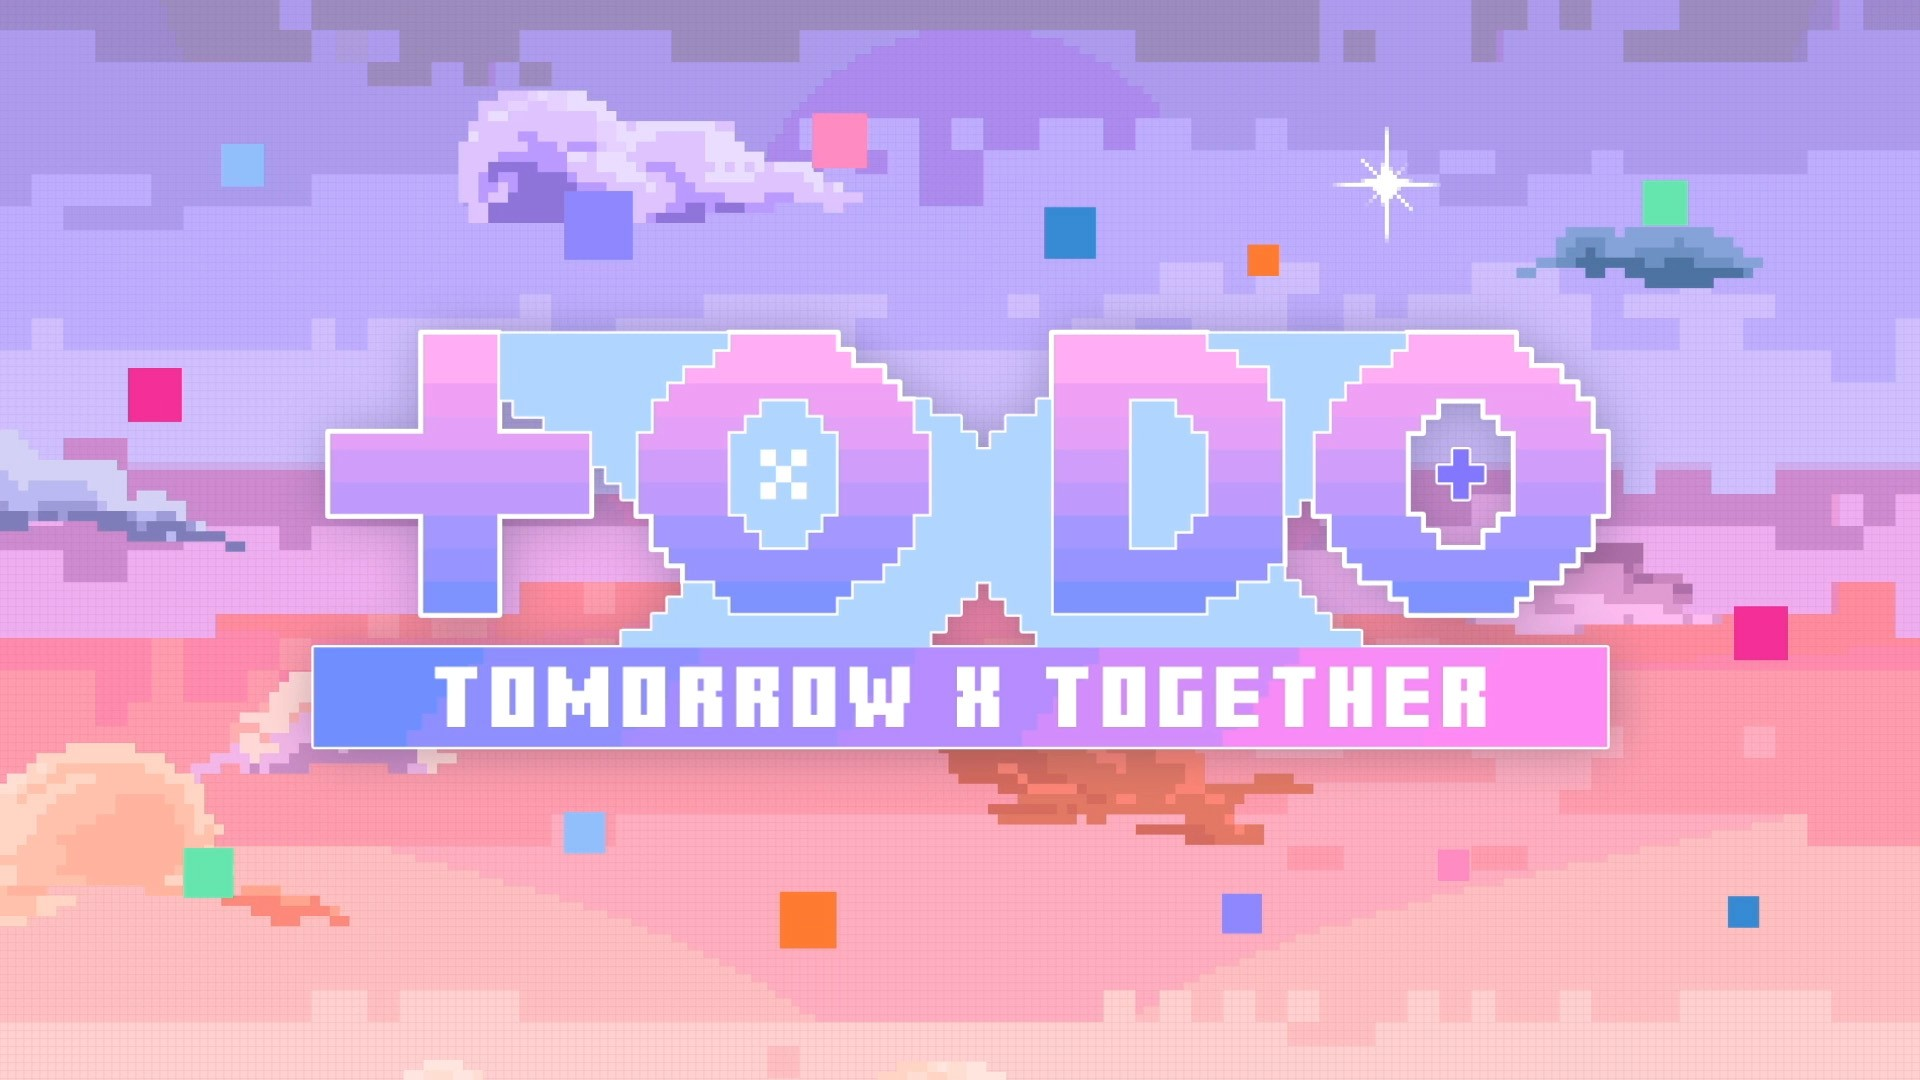 TO DO X TOMORROW X TOGETHER - Teaser